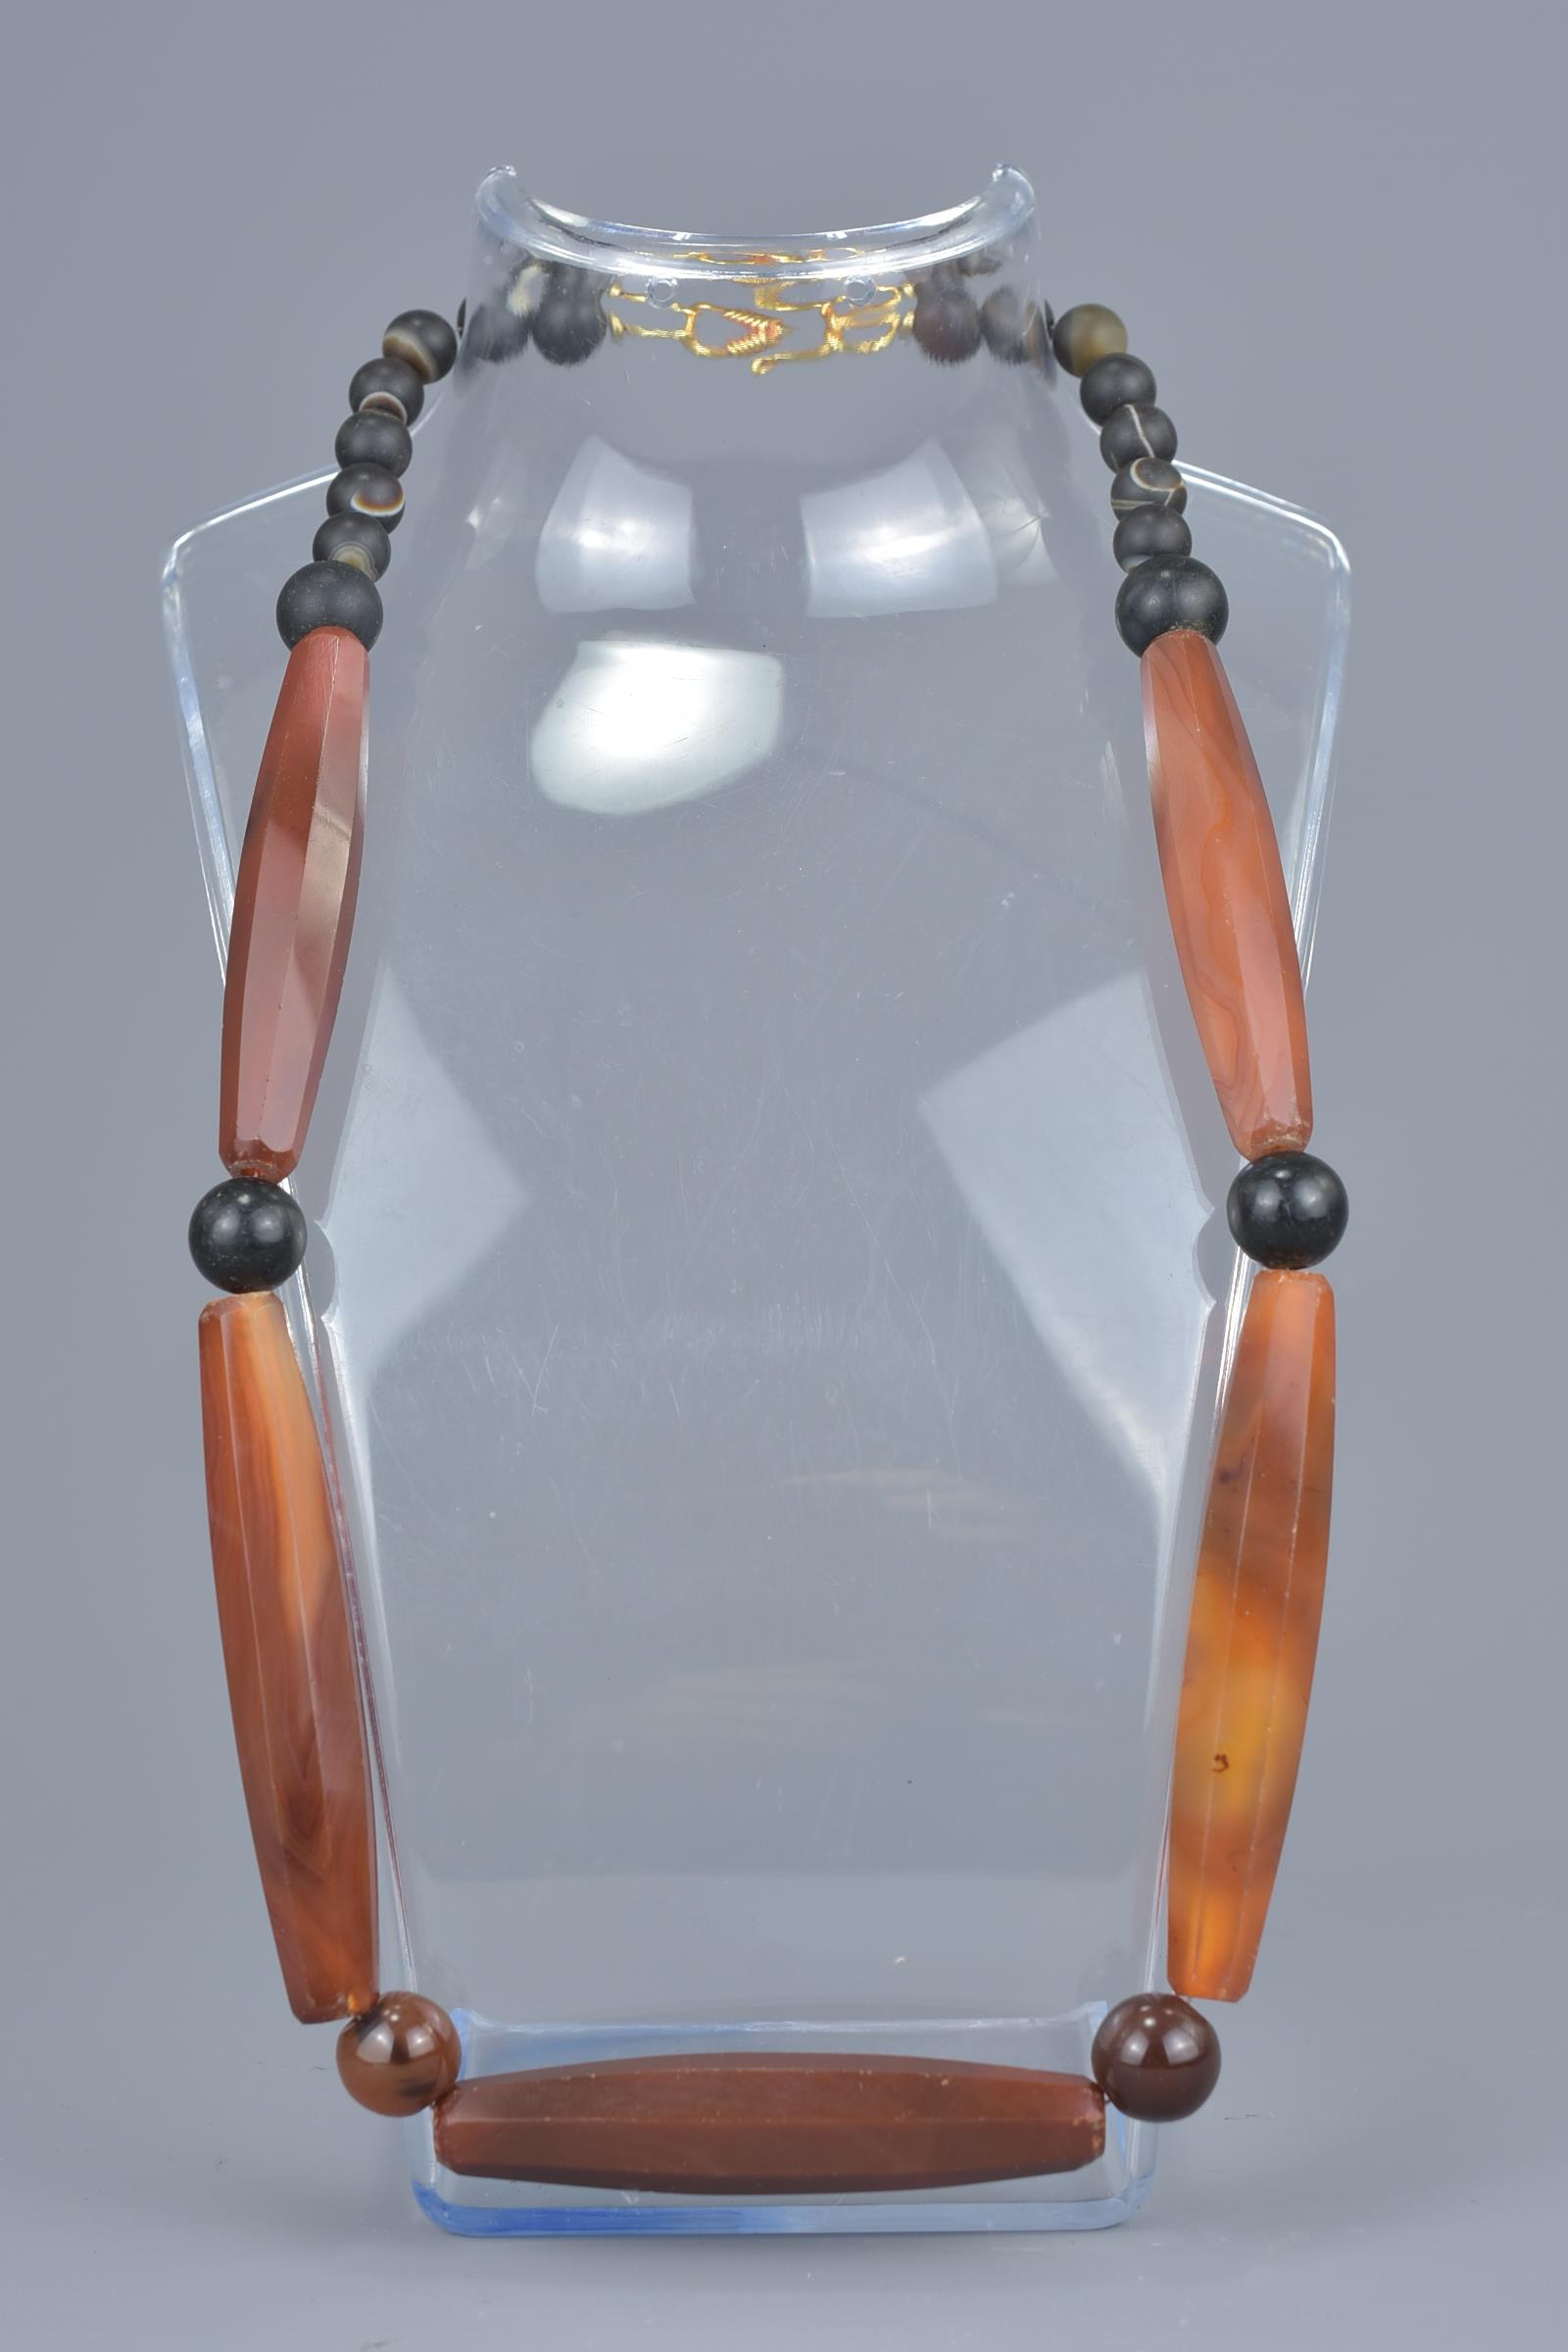 Lot 38 - A string of five long agate beads together with twenty small agate beads in a necklace.